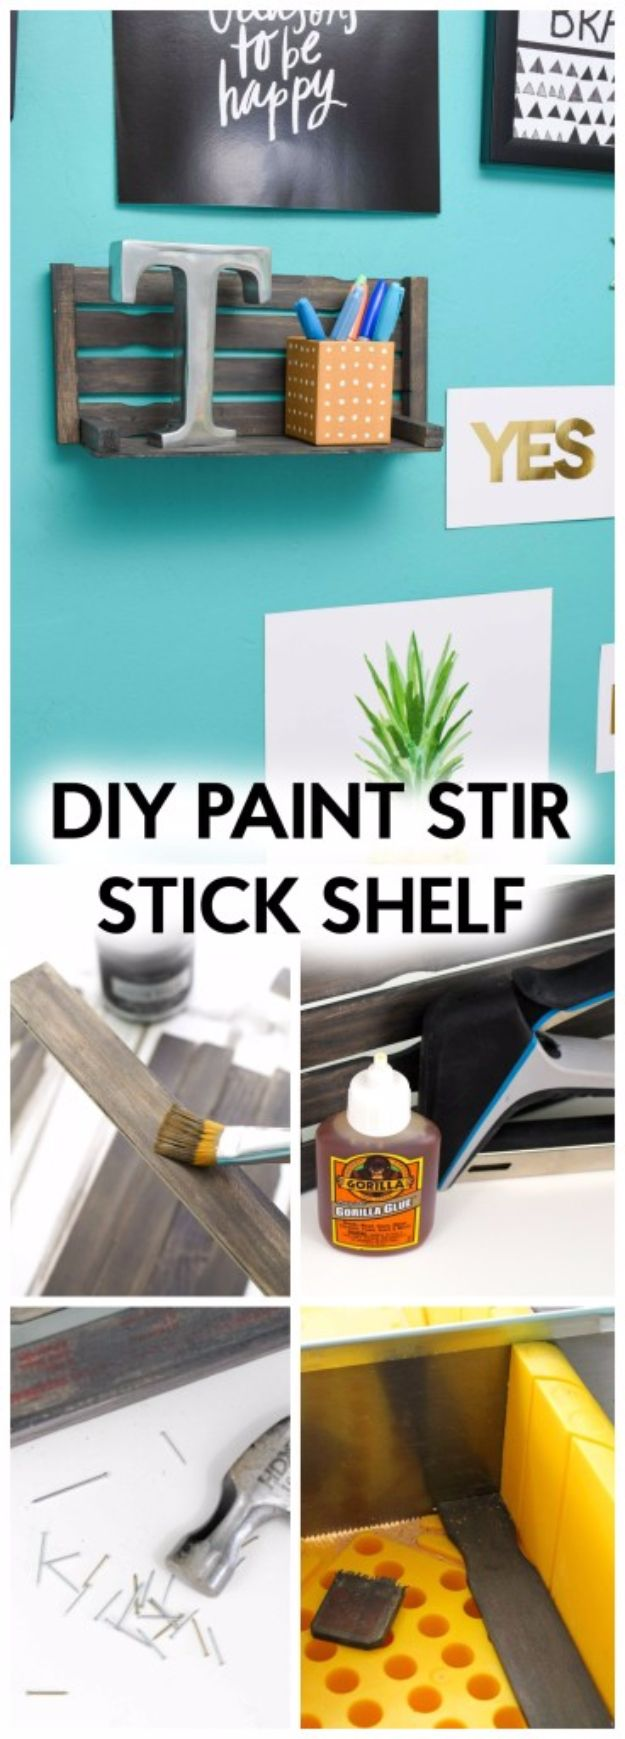 Diy Projects Made With Paint Sticks Stir Stick Shelf Best Creative Crafts Easy Dyi You Can Make From The Hardware